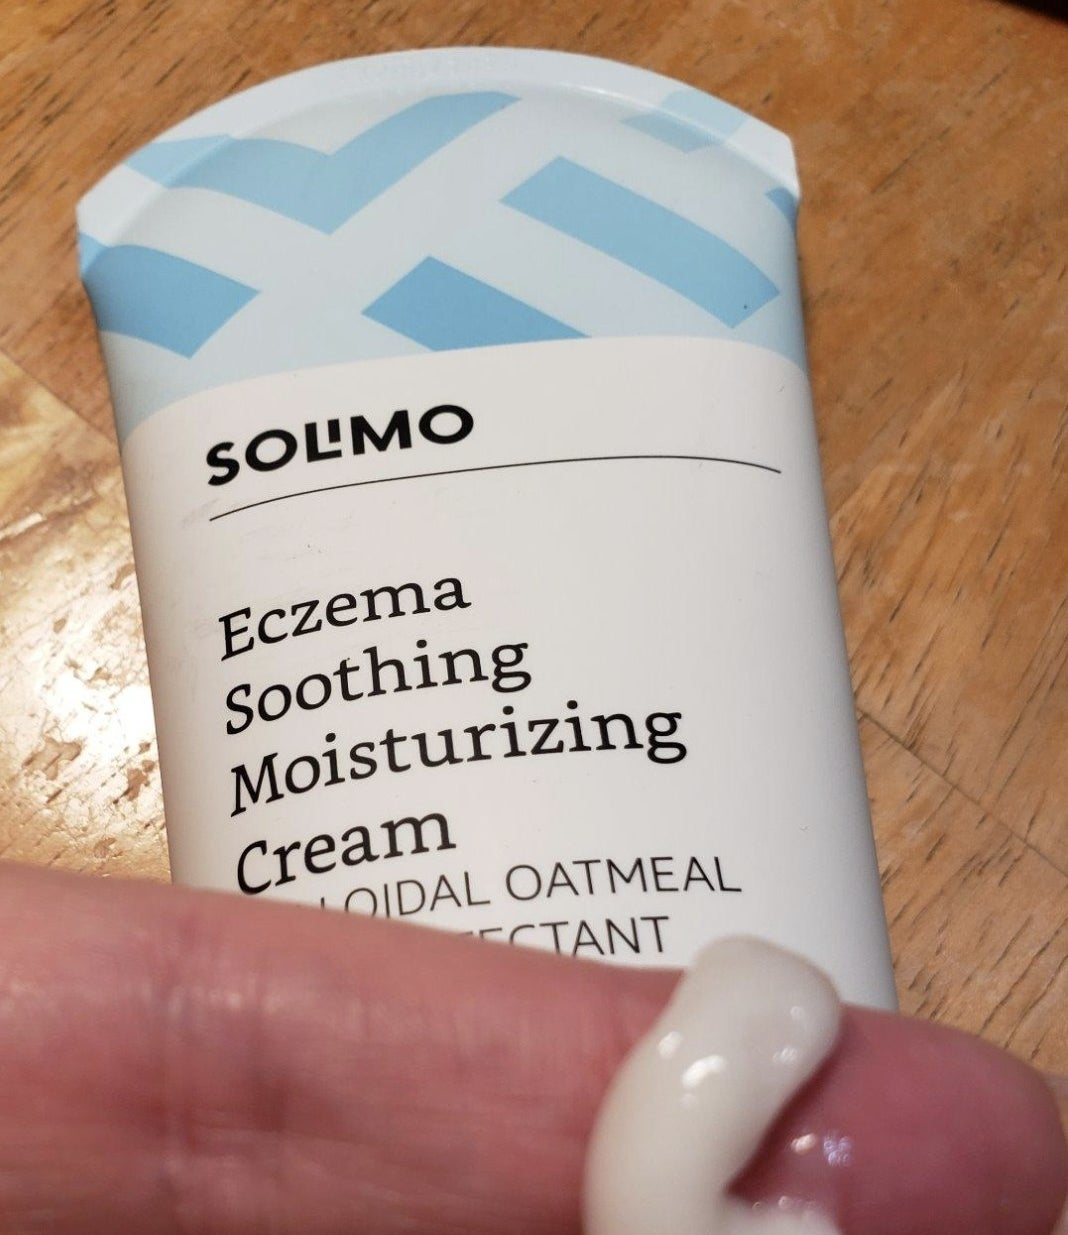 reviewer showing tube of cream as well as a small sample on their finger showing texture/consistency